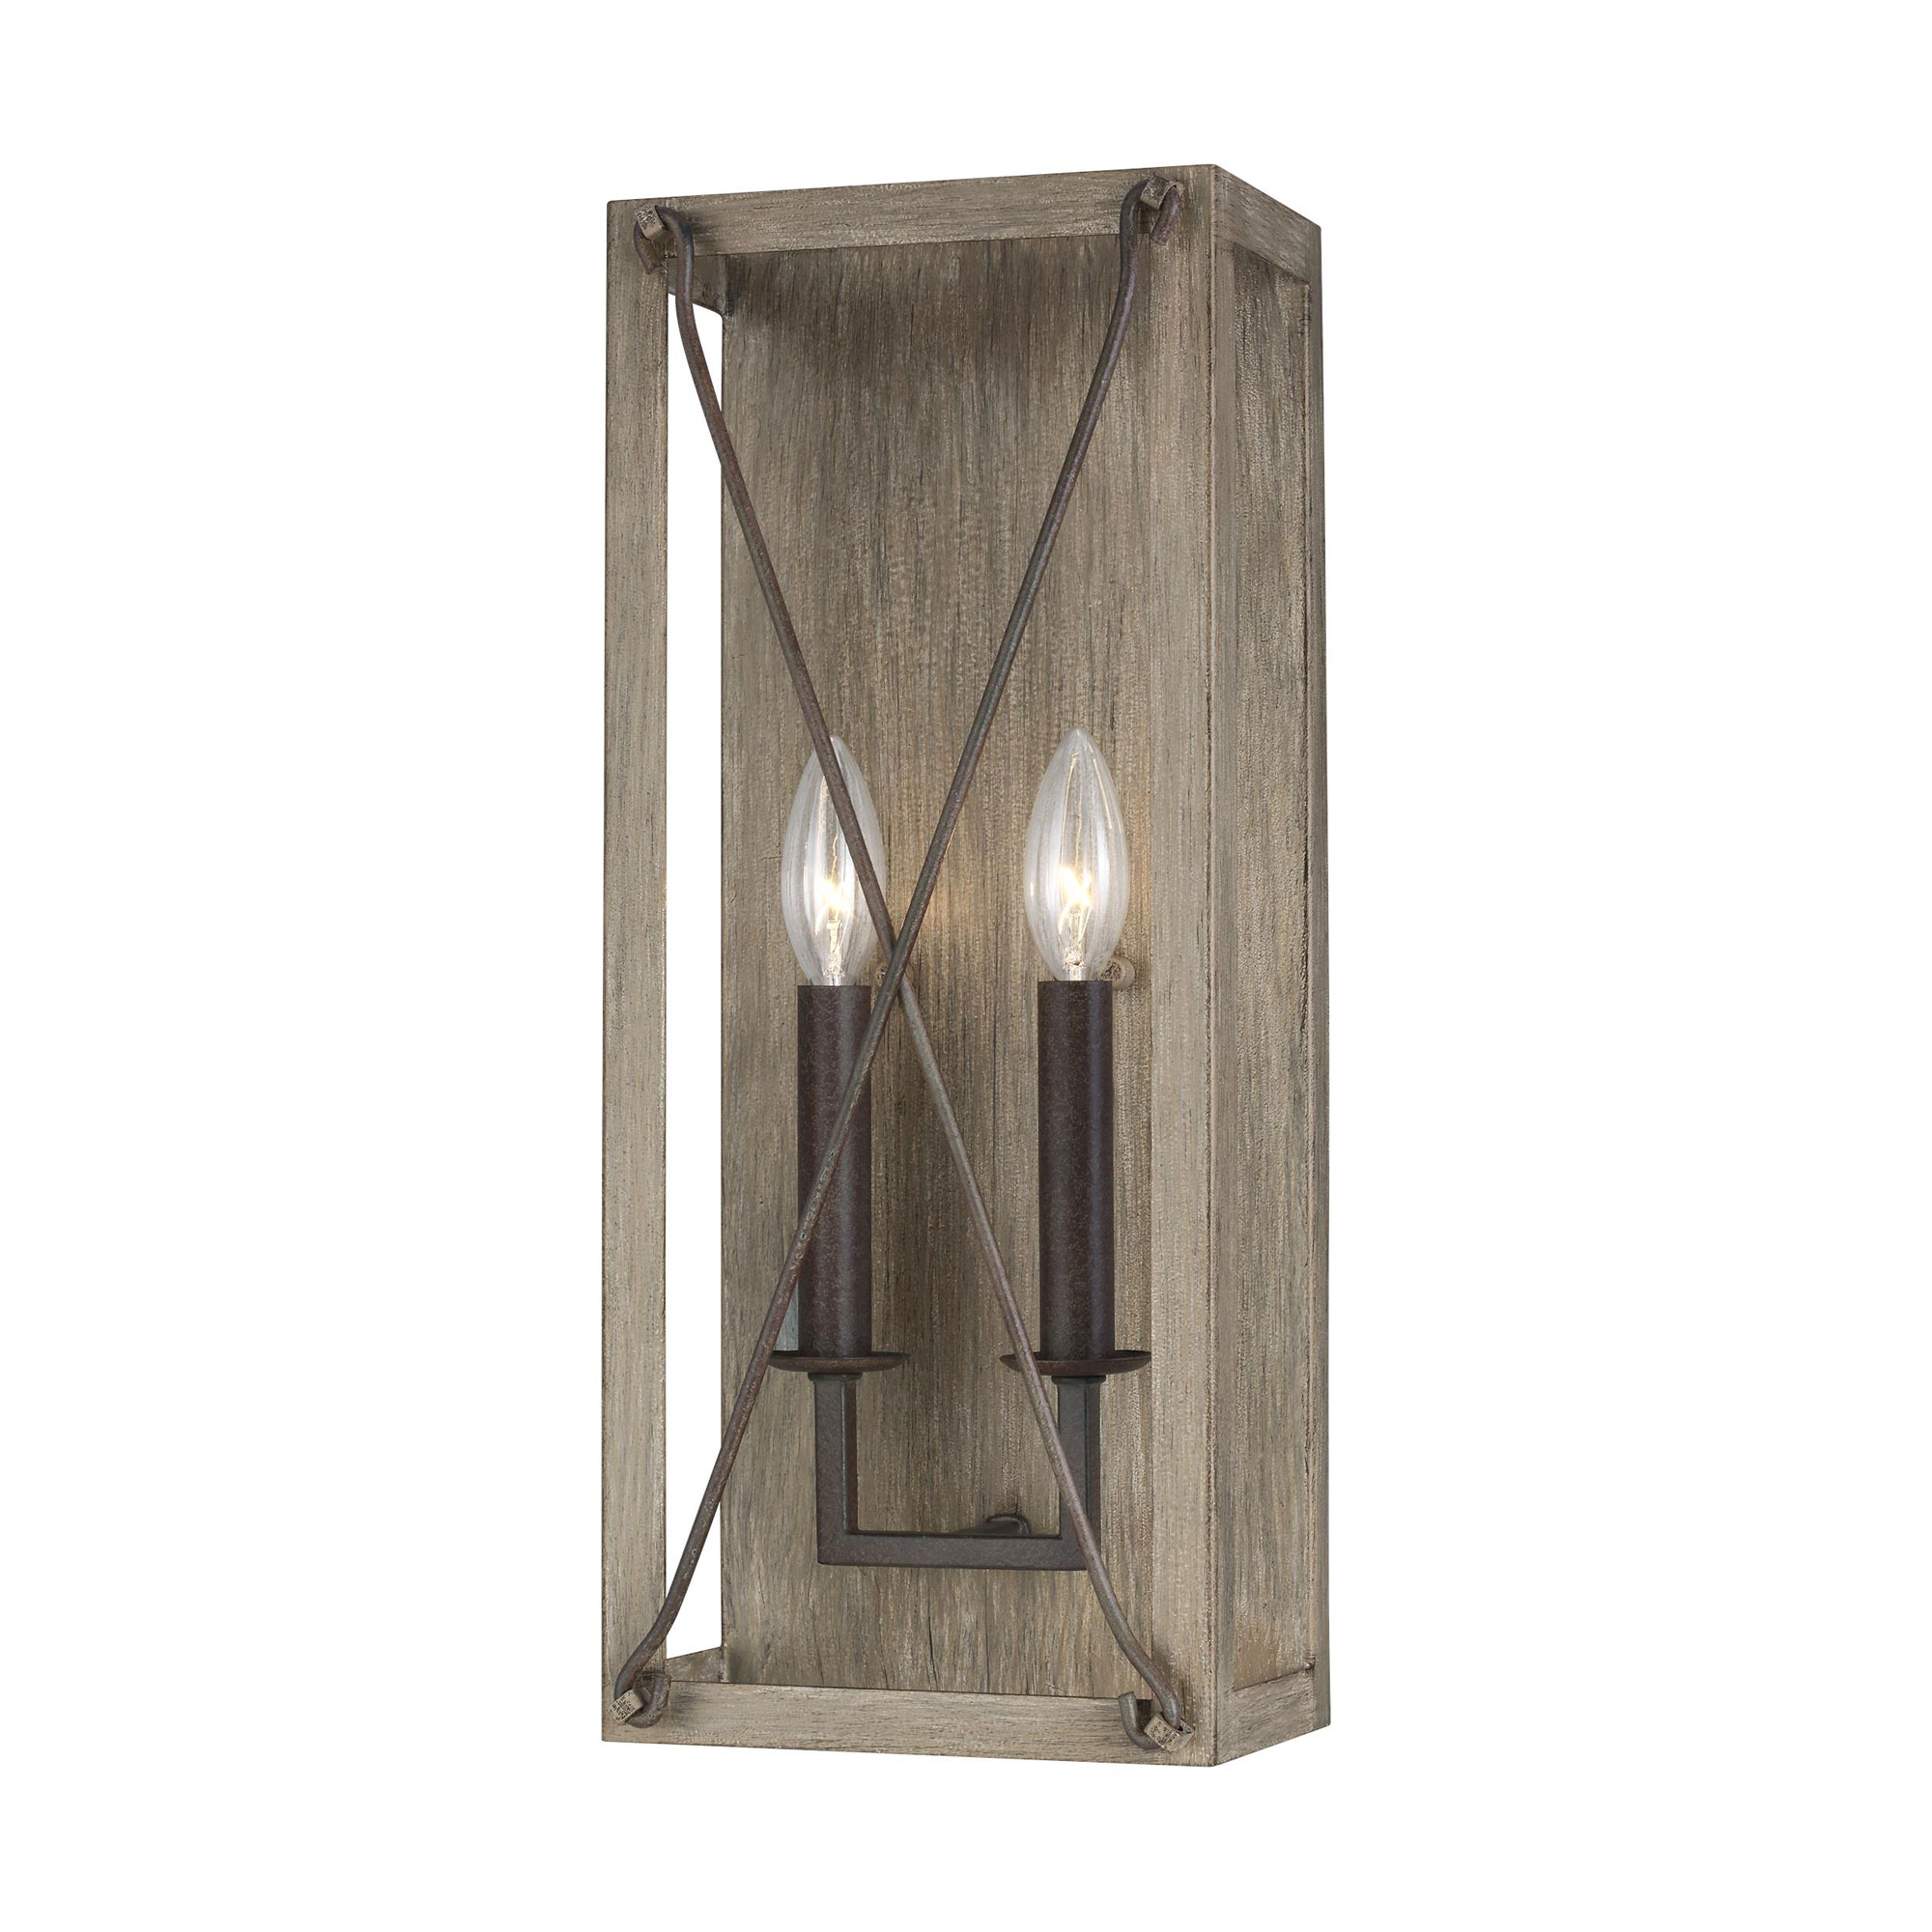 Thornwood Wall Sconce By Sea Gull Lighting 4126302 872